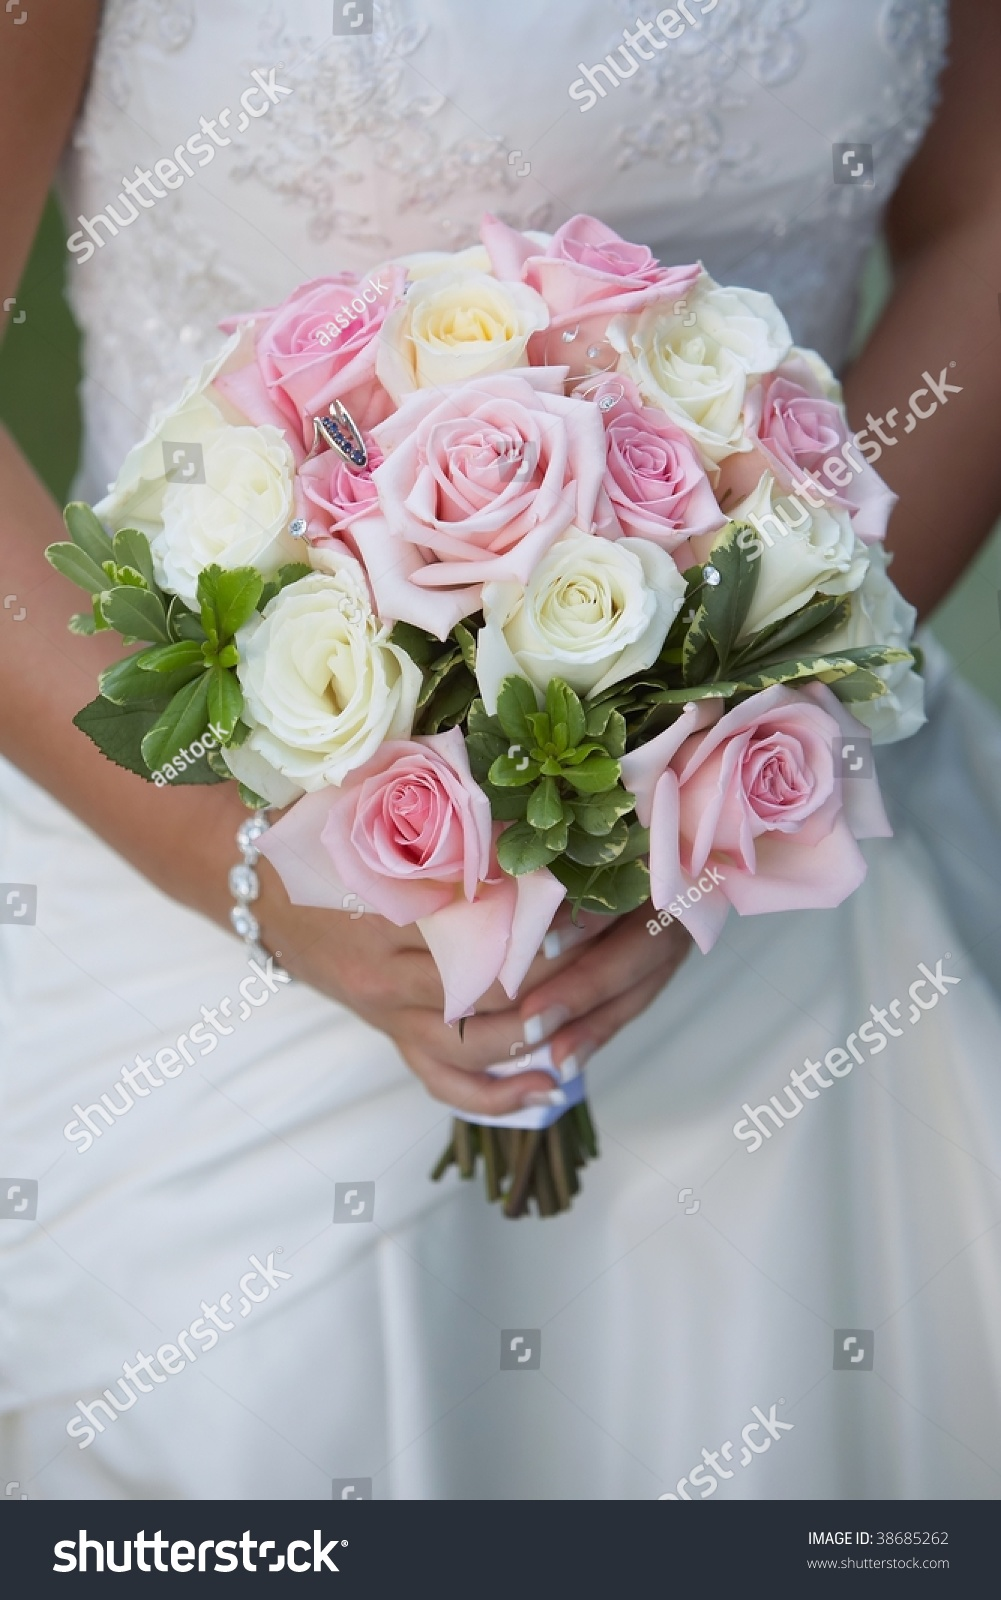 Pink And White Rose Wedding Bouquet Held By Bride